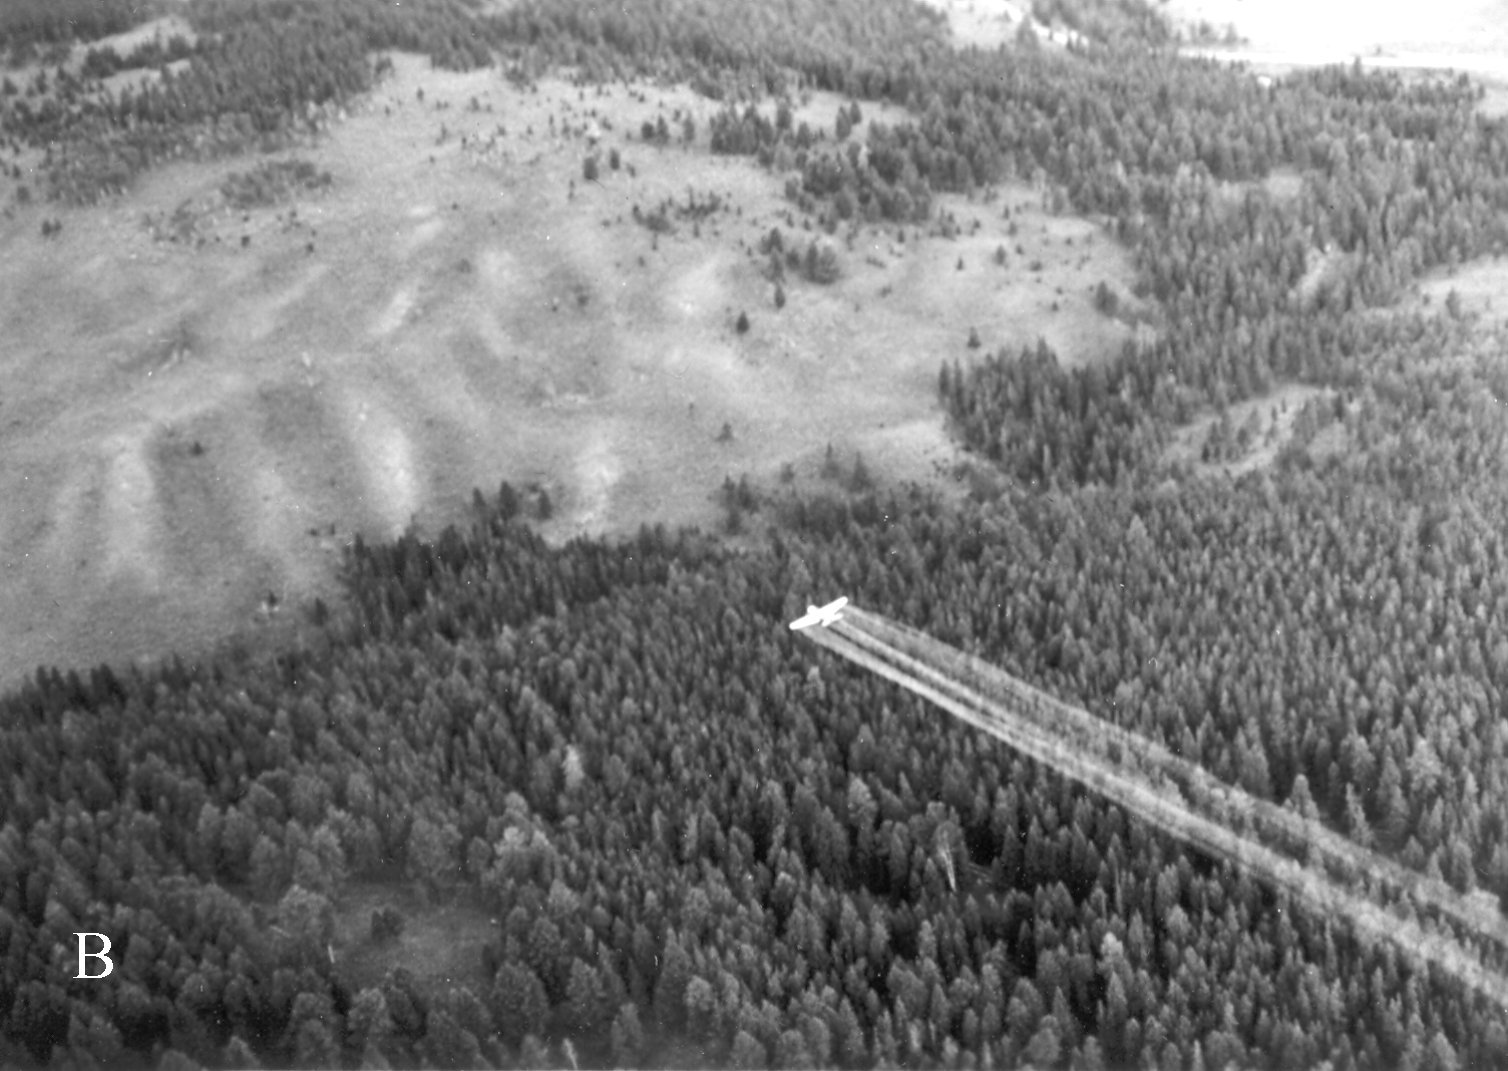 Caption from WFIWC: Stearman spraying DDT over the western edge of Blacktail Plateau near Lava Creek in Yellowstone N.P. during one of the last spruce budworm control projects in the Park, July 1955. The ensuing controversy over environmental damage done by this insecticide hastened the adoption of a more passive management policy in the 1960's regarding forest insects in the Park (Furniss & Renkin 2003, Figure 17B). Coeur d'Alene FIL photo from Wester Forest Insect Work Conference (WFIWC) archives. - See more at: http://www.wfiwc.org/history/photos/yellowstone#sthash.hPfPuWGI.dpuf